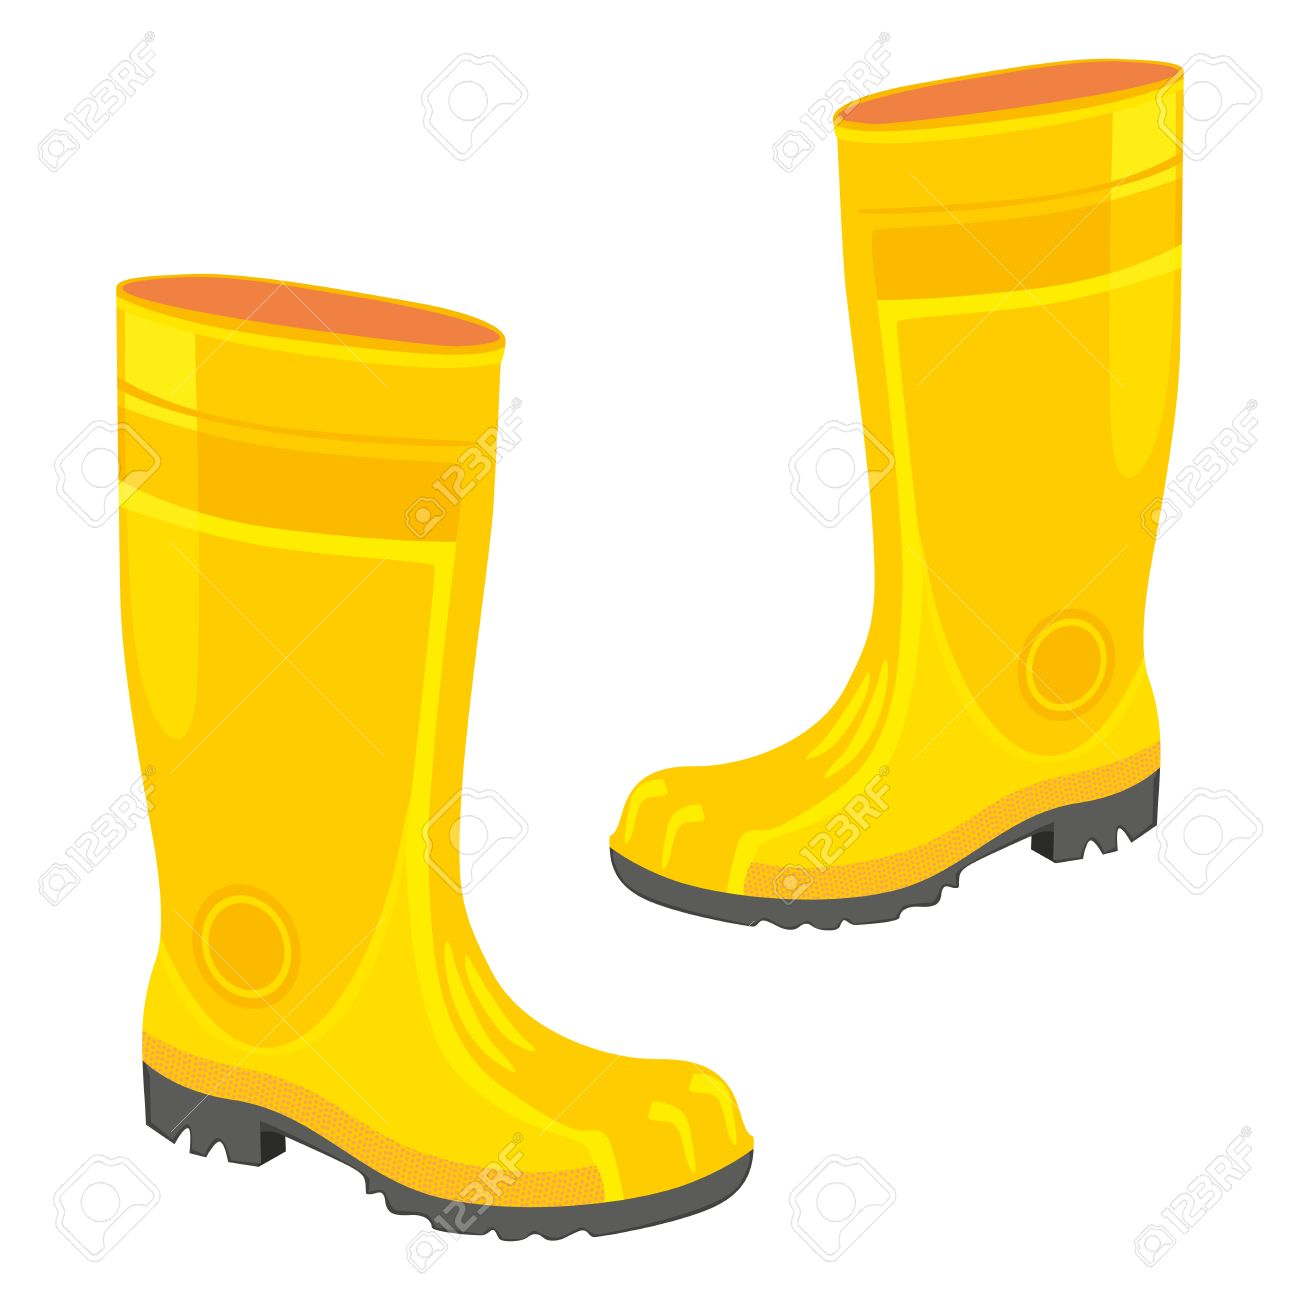 welly: fully editable illustration of isolated rubber boots